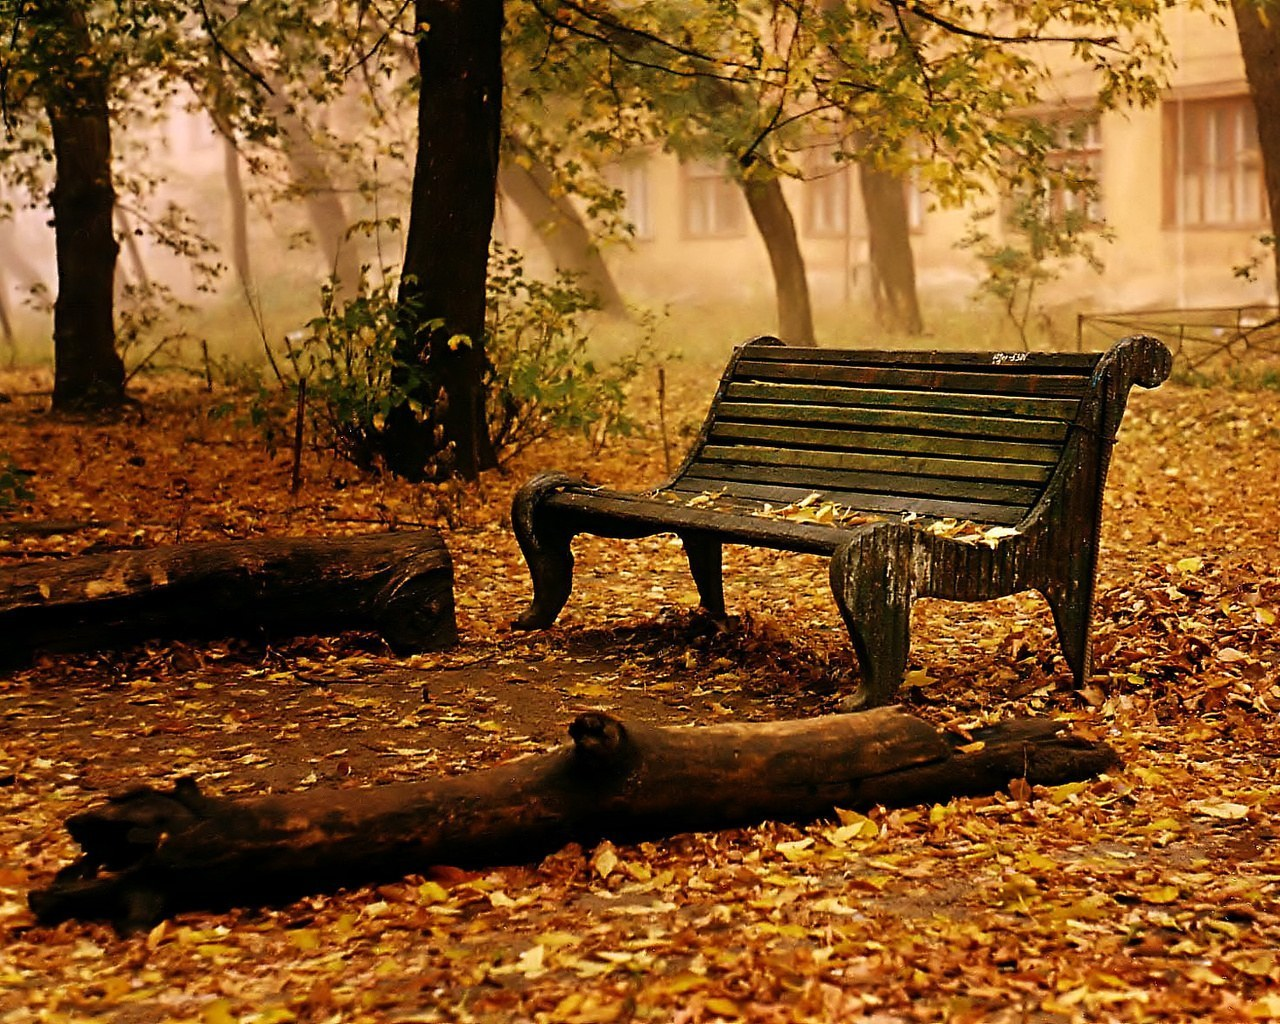 Autumn-autumn-jpg-%C3%97-wallpaper-wp6002145